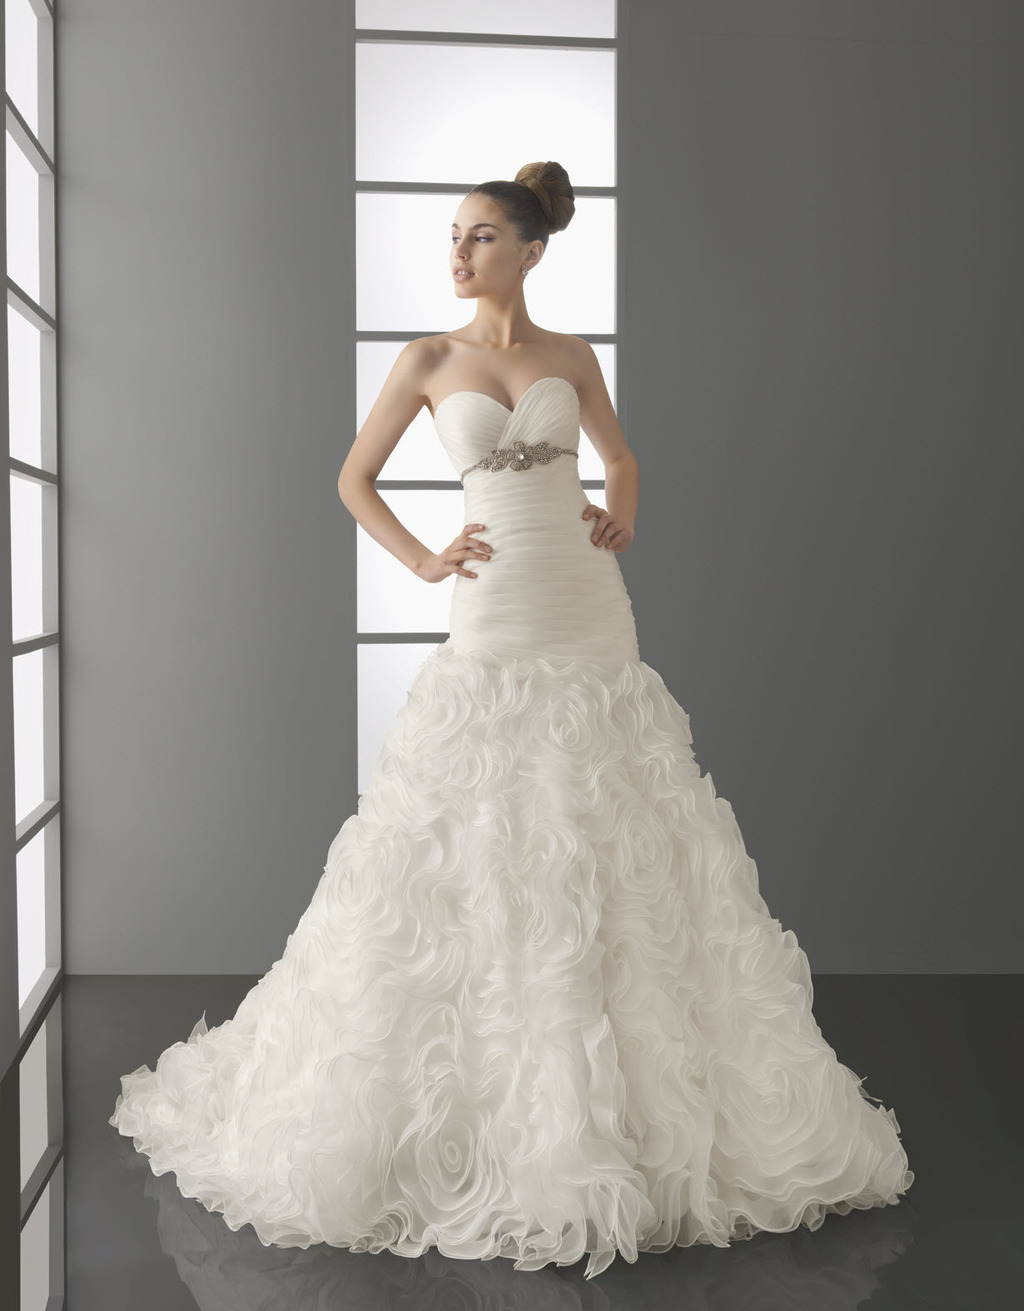 Paris-wedding-dress-aire-barcelona-spring-2012-bridal-gown-sweetheart-neckline-textured-skirt.full